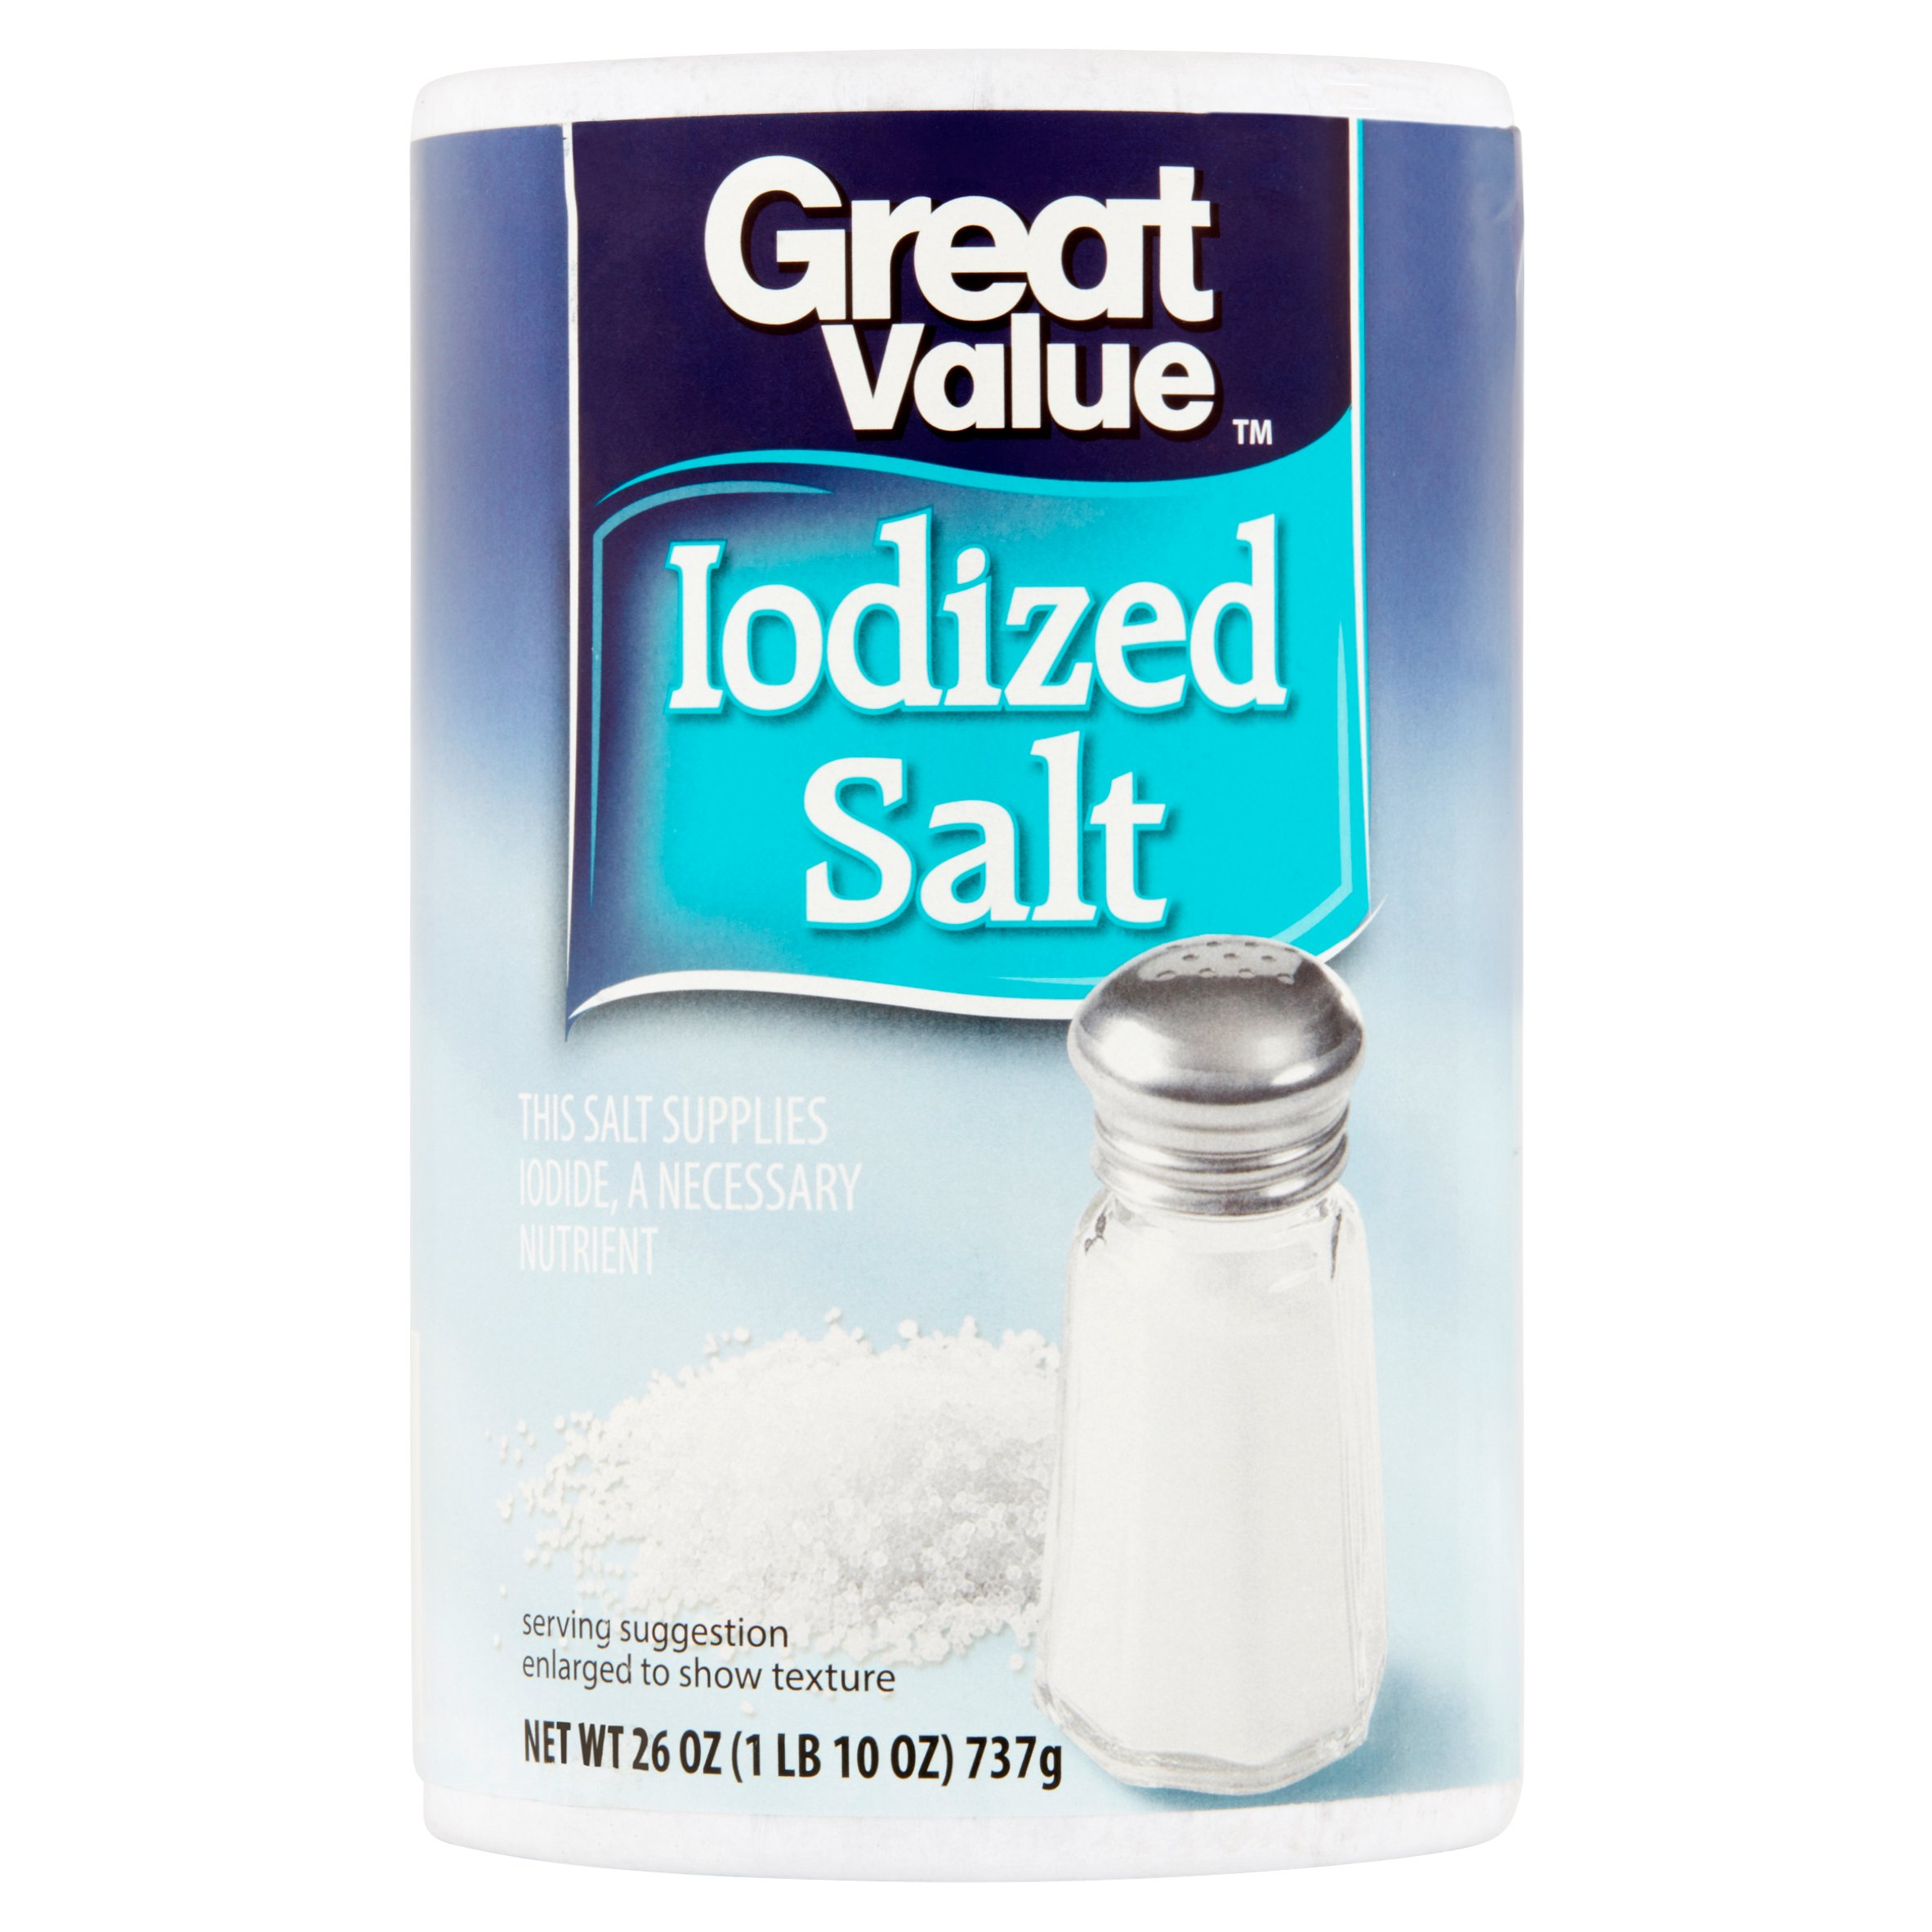 (4 Pack) Great Value Iodized Salt, 26 oz